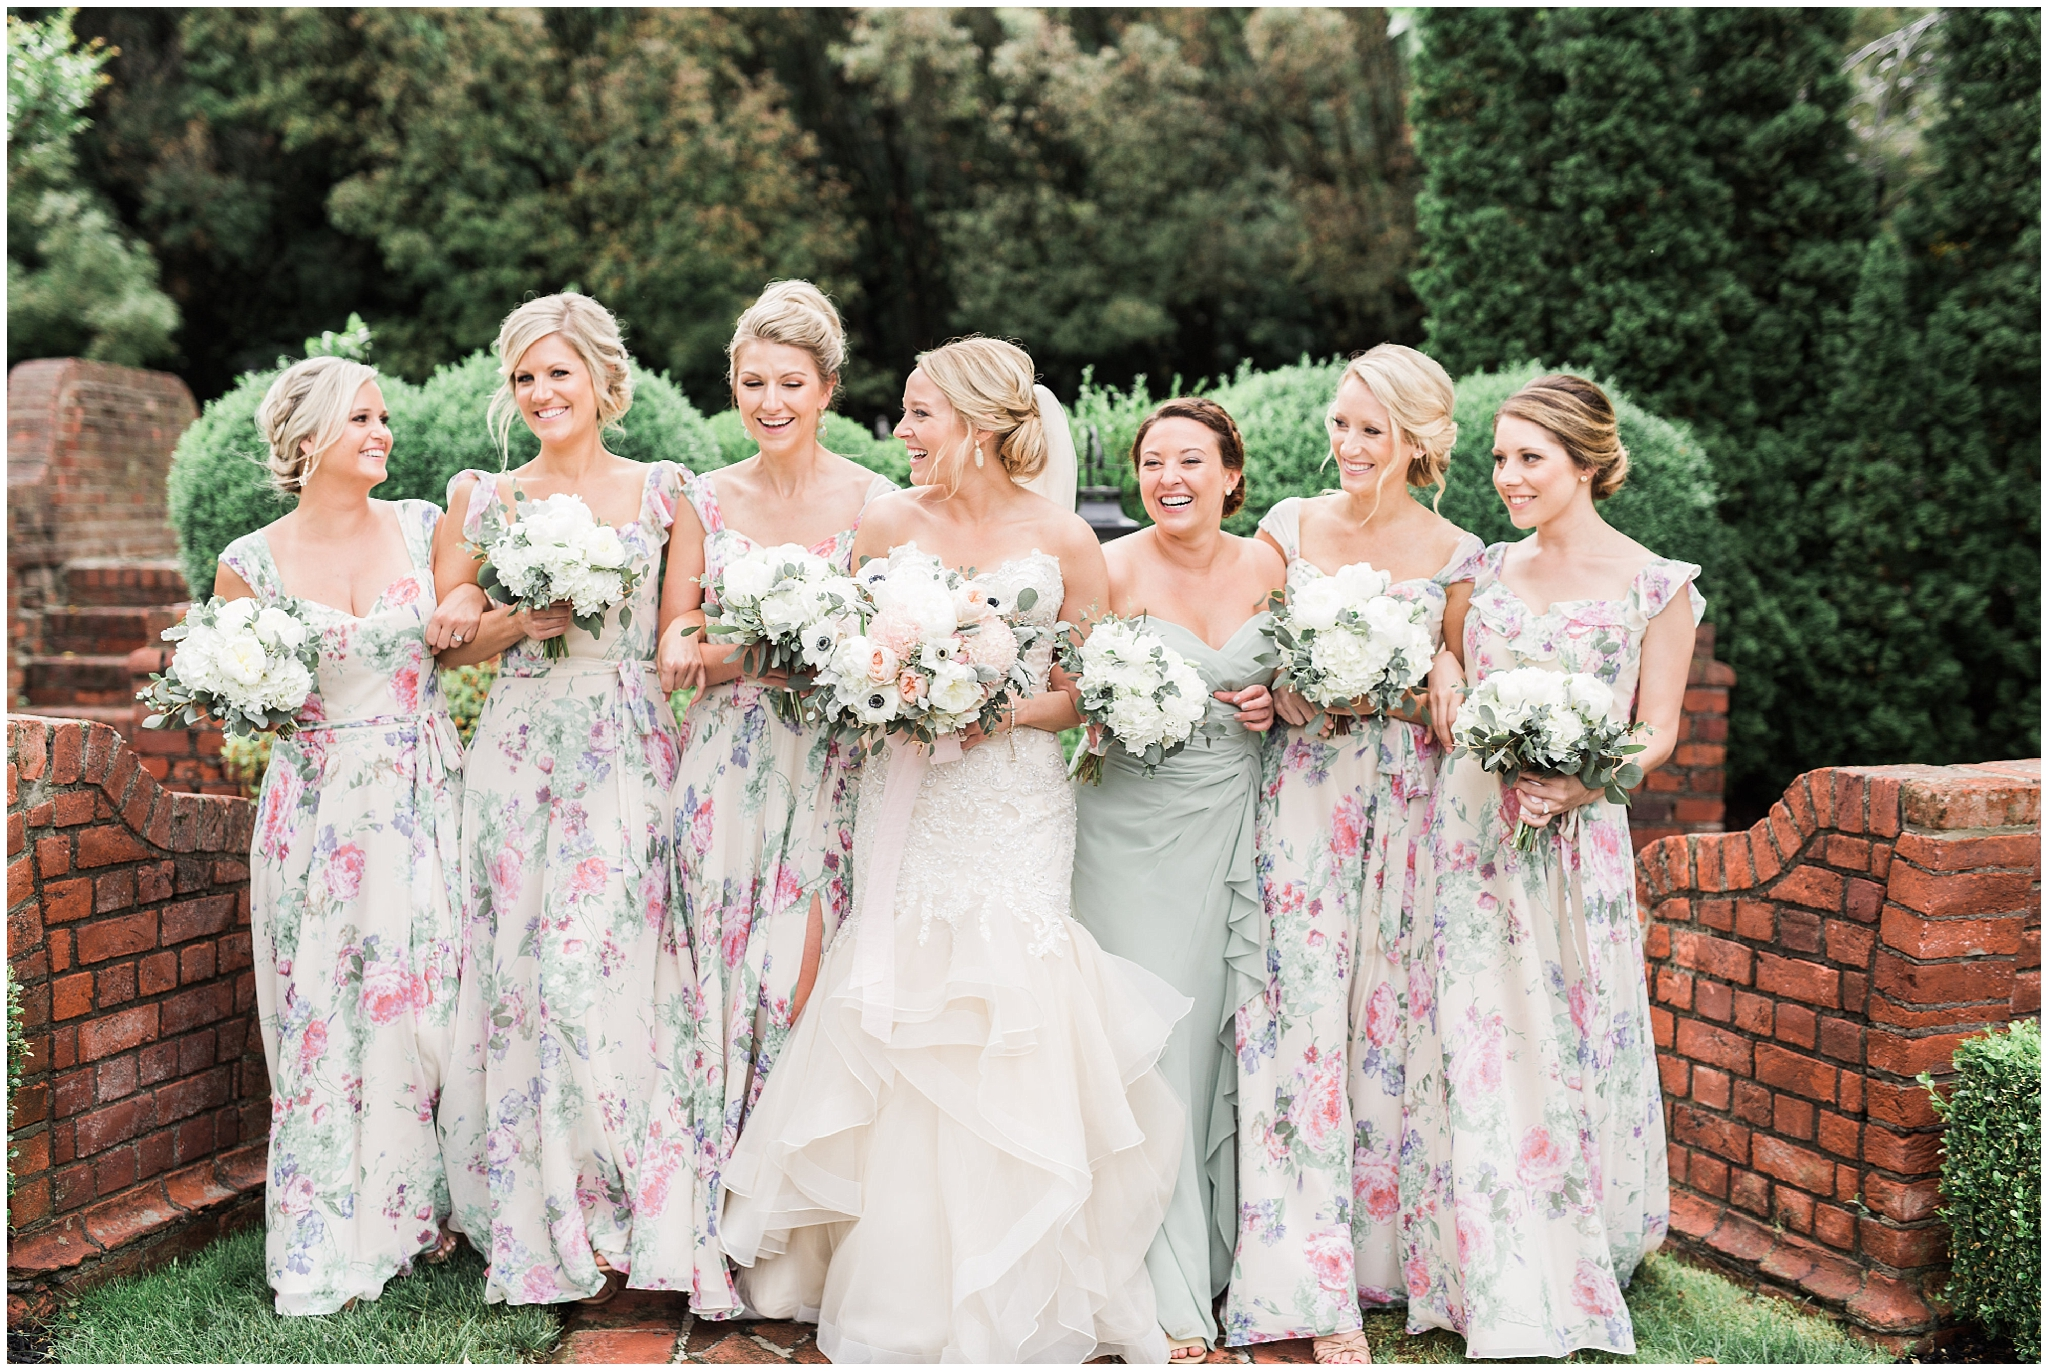 Aren't these bridesmaid dresses (and stunning bridesmaids!!) EVERYTHING?! So unique and stunning.